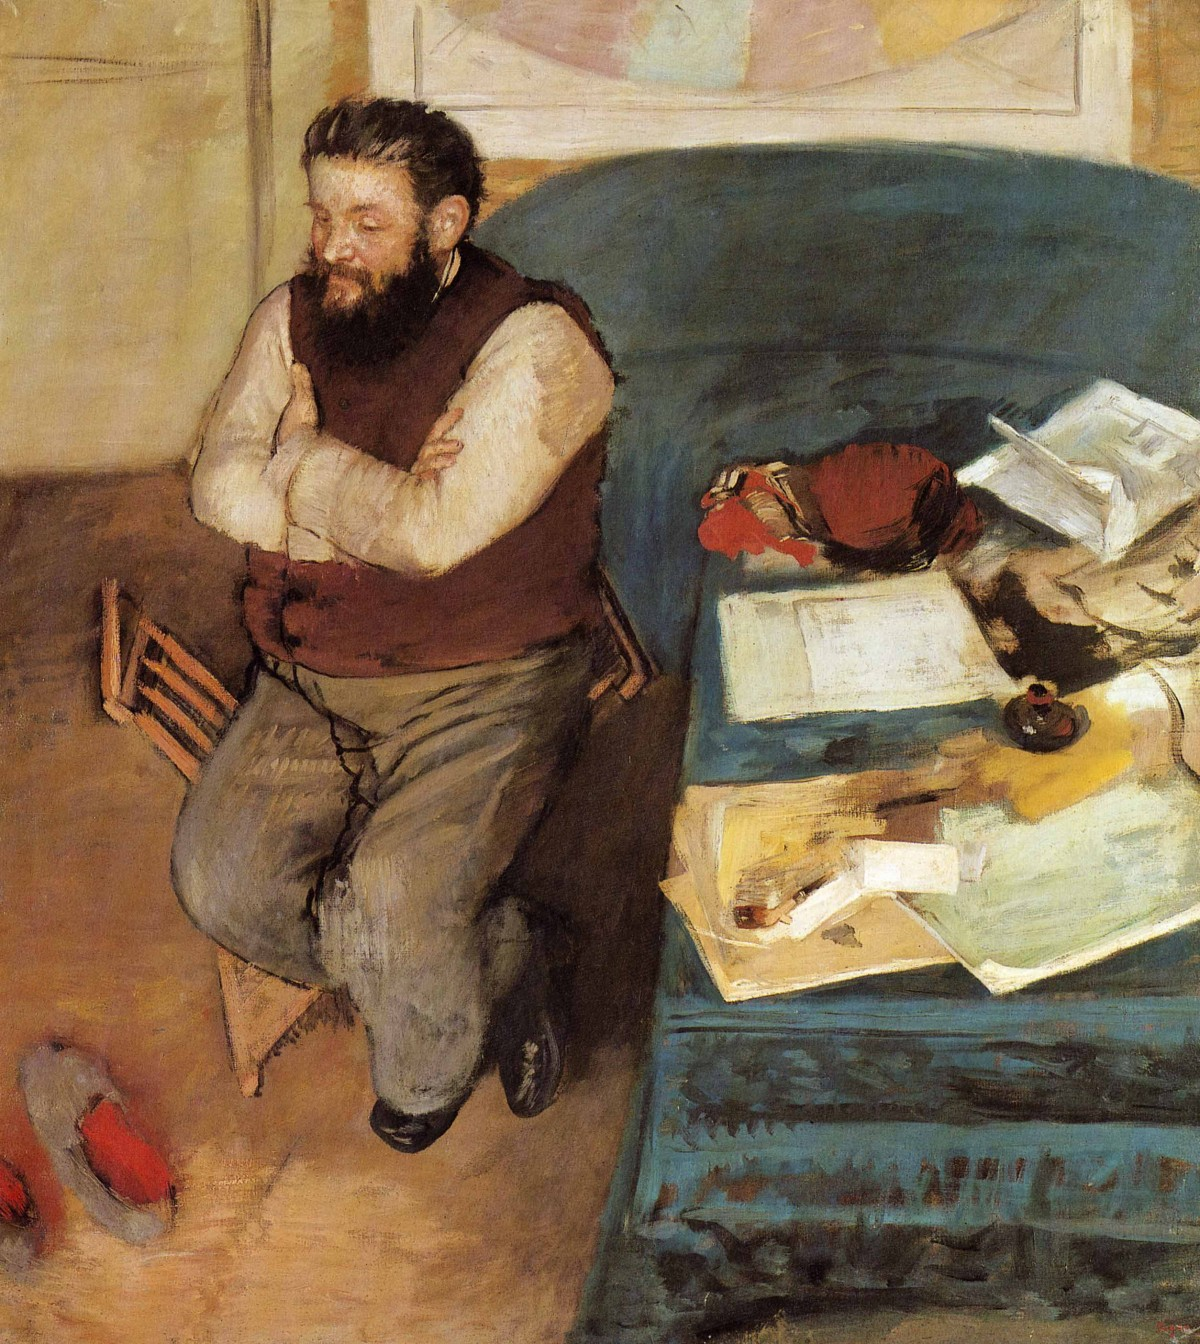 Fig. 3. Edgar Degas, Diego Martelli (Portrait de M. Diego Martelli), 1879. Oil on canvas, 43 1/2 × 39 3/4 in. (110 × 100 cm). National Gallery of Scotland, Edinburgh